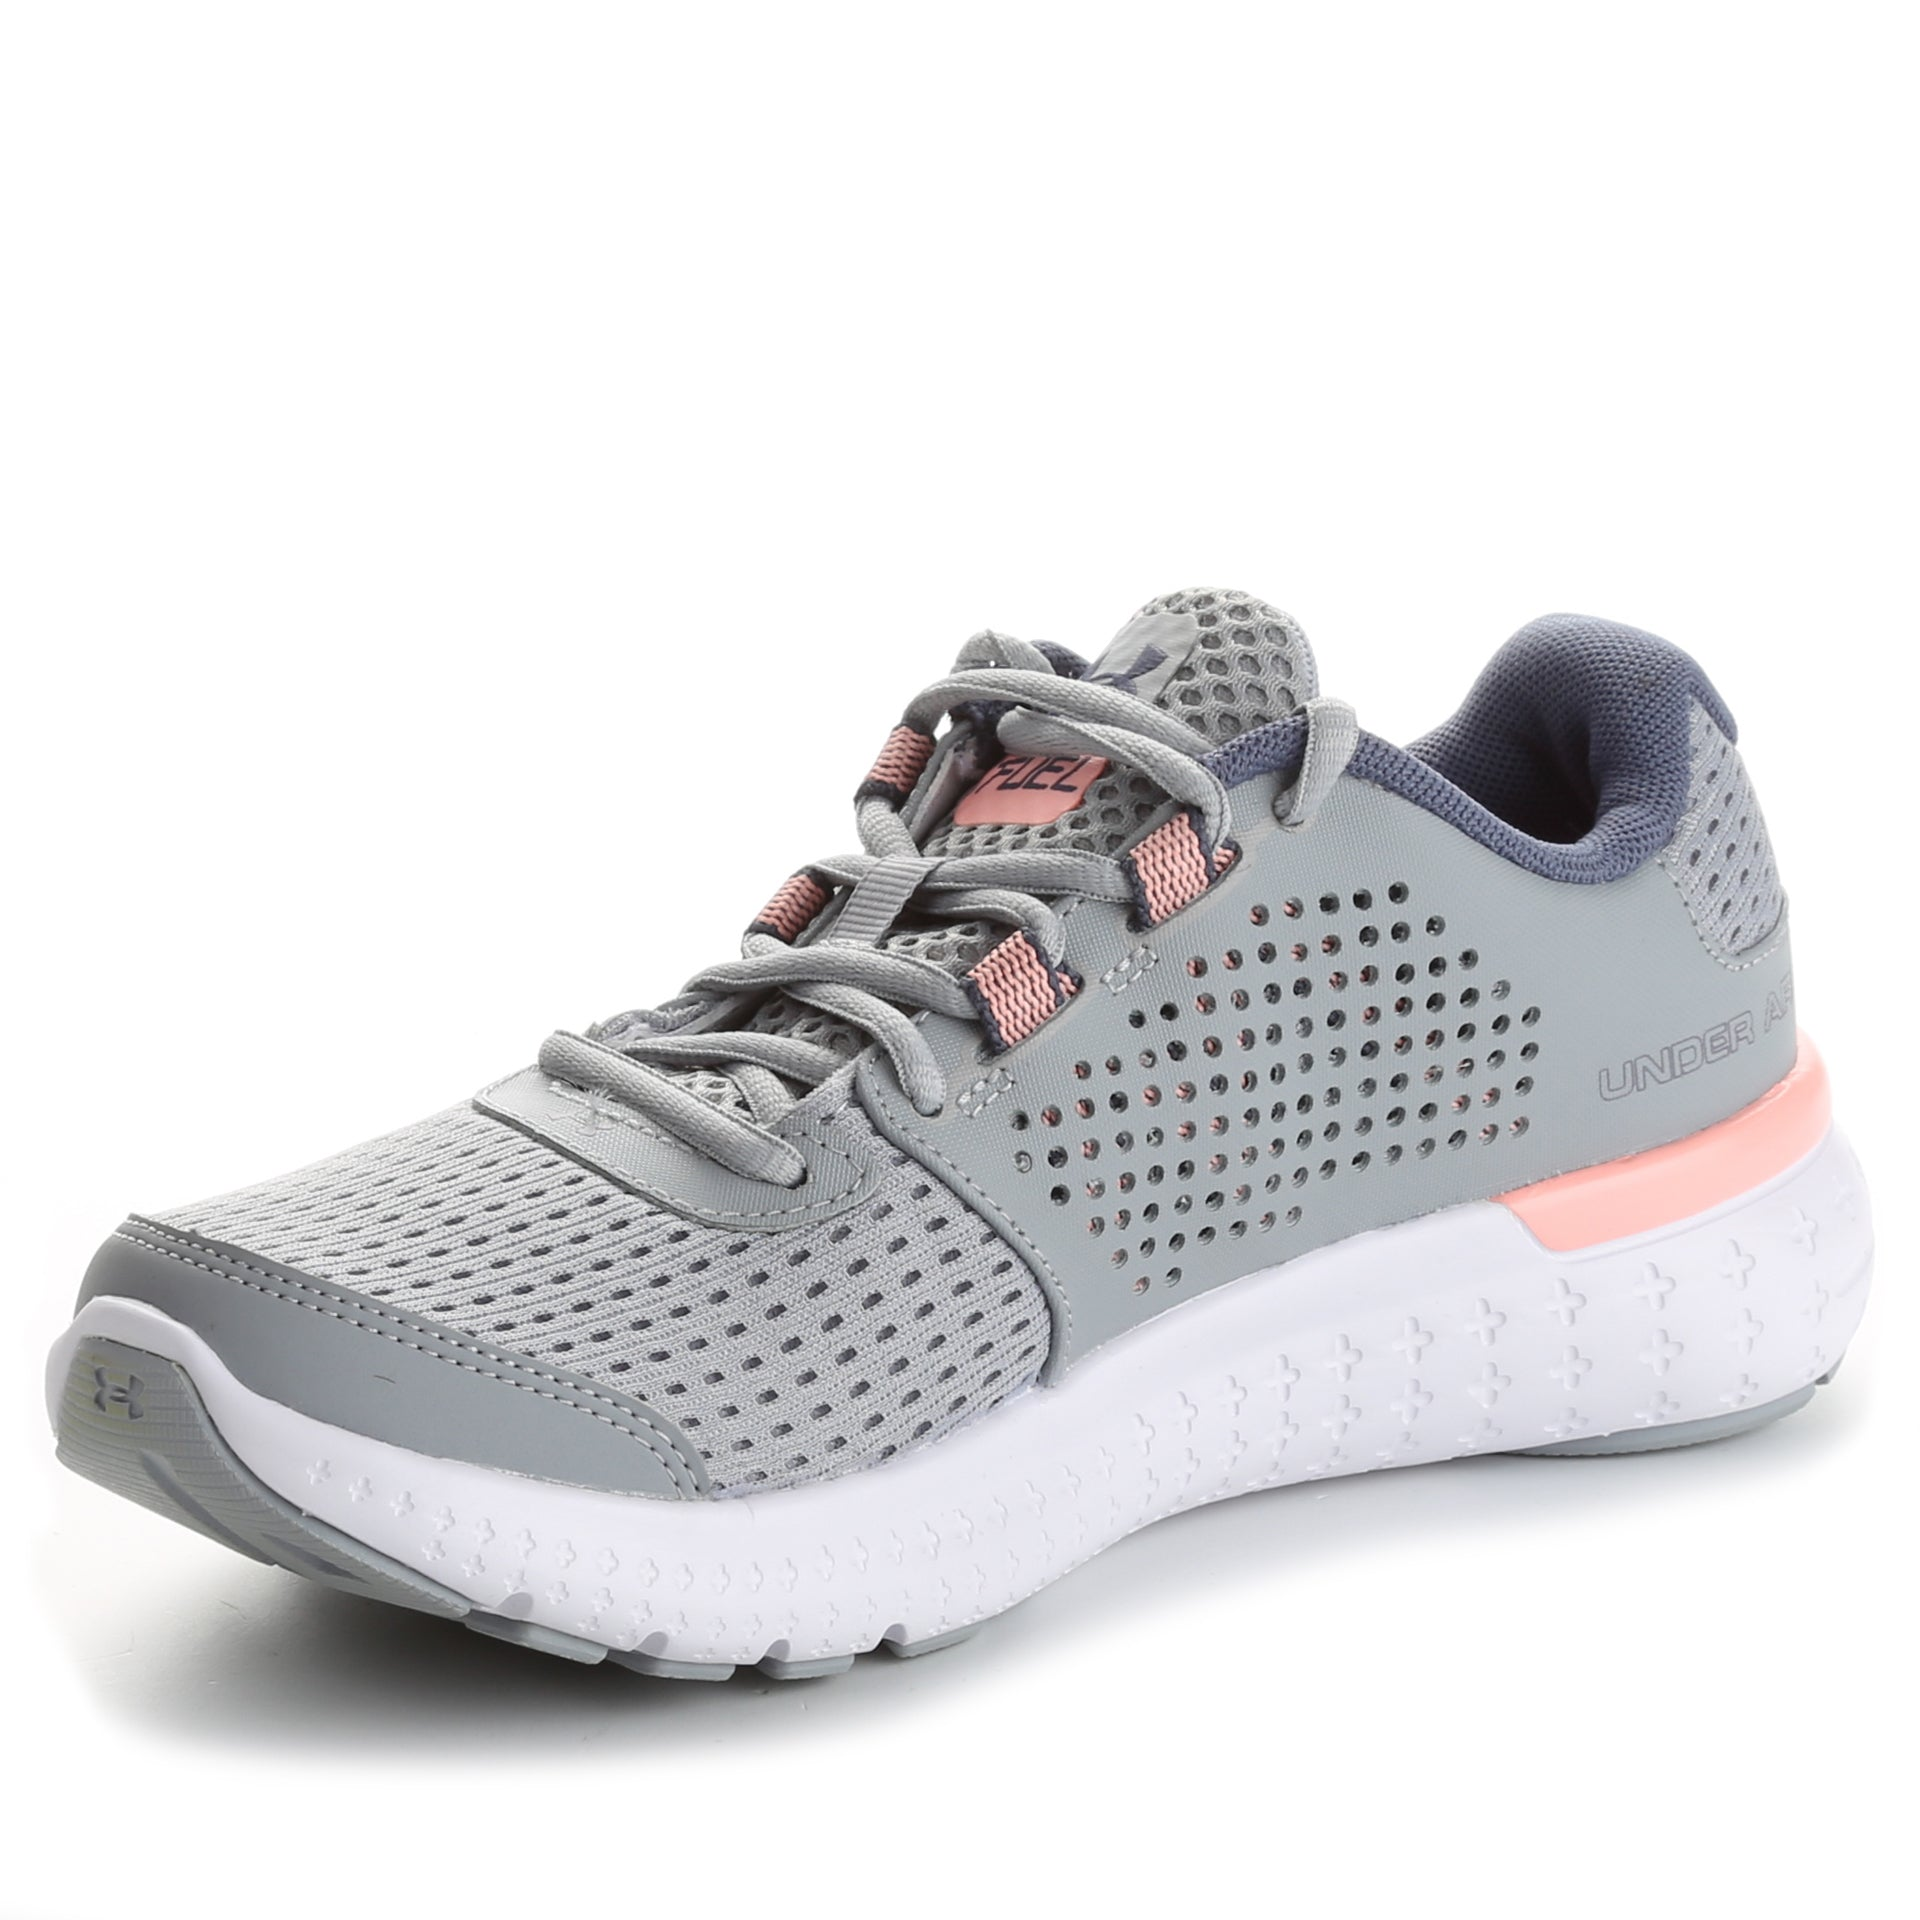 half off 5f12d 8129e Under Armour Women's Micro G Fuel Running Shoes- Overcast Grey/Pink  Sands/Apollo Grey